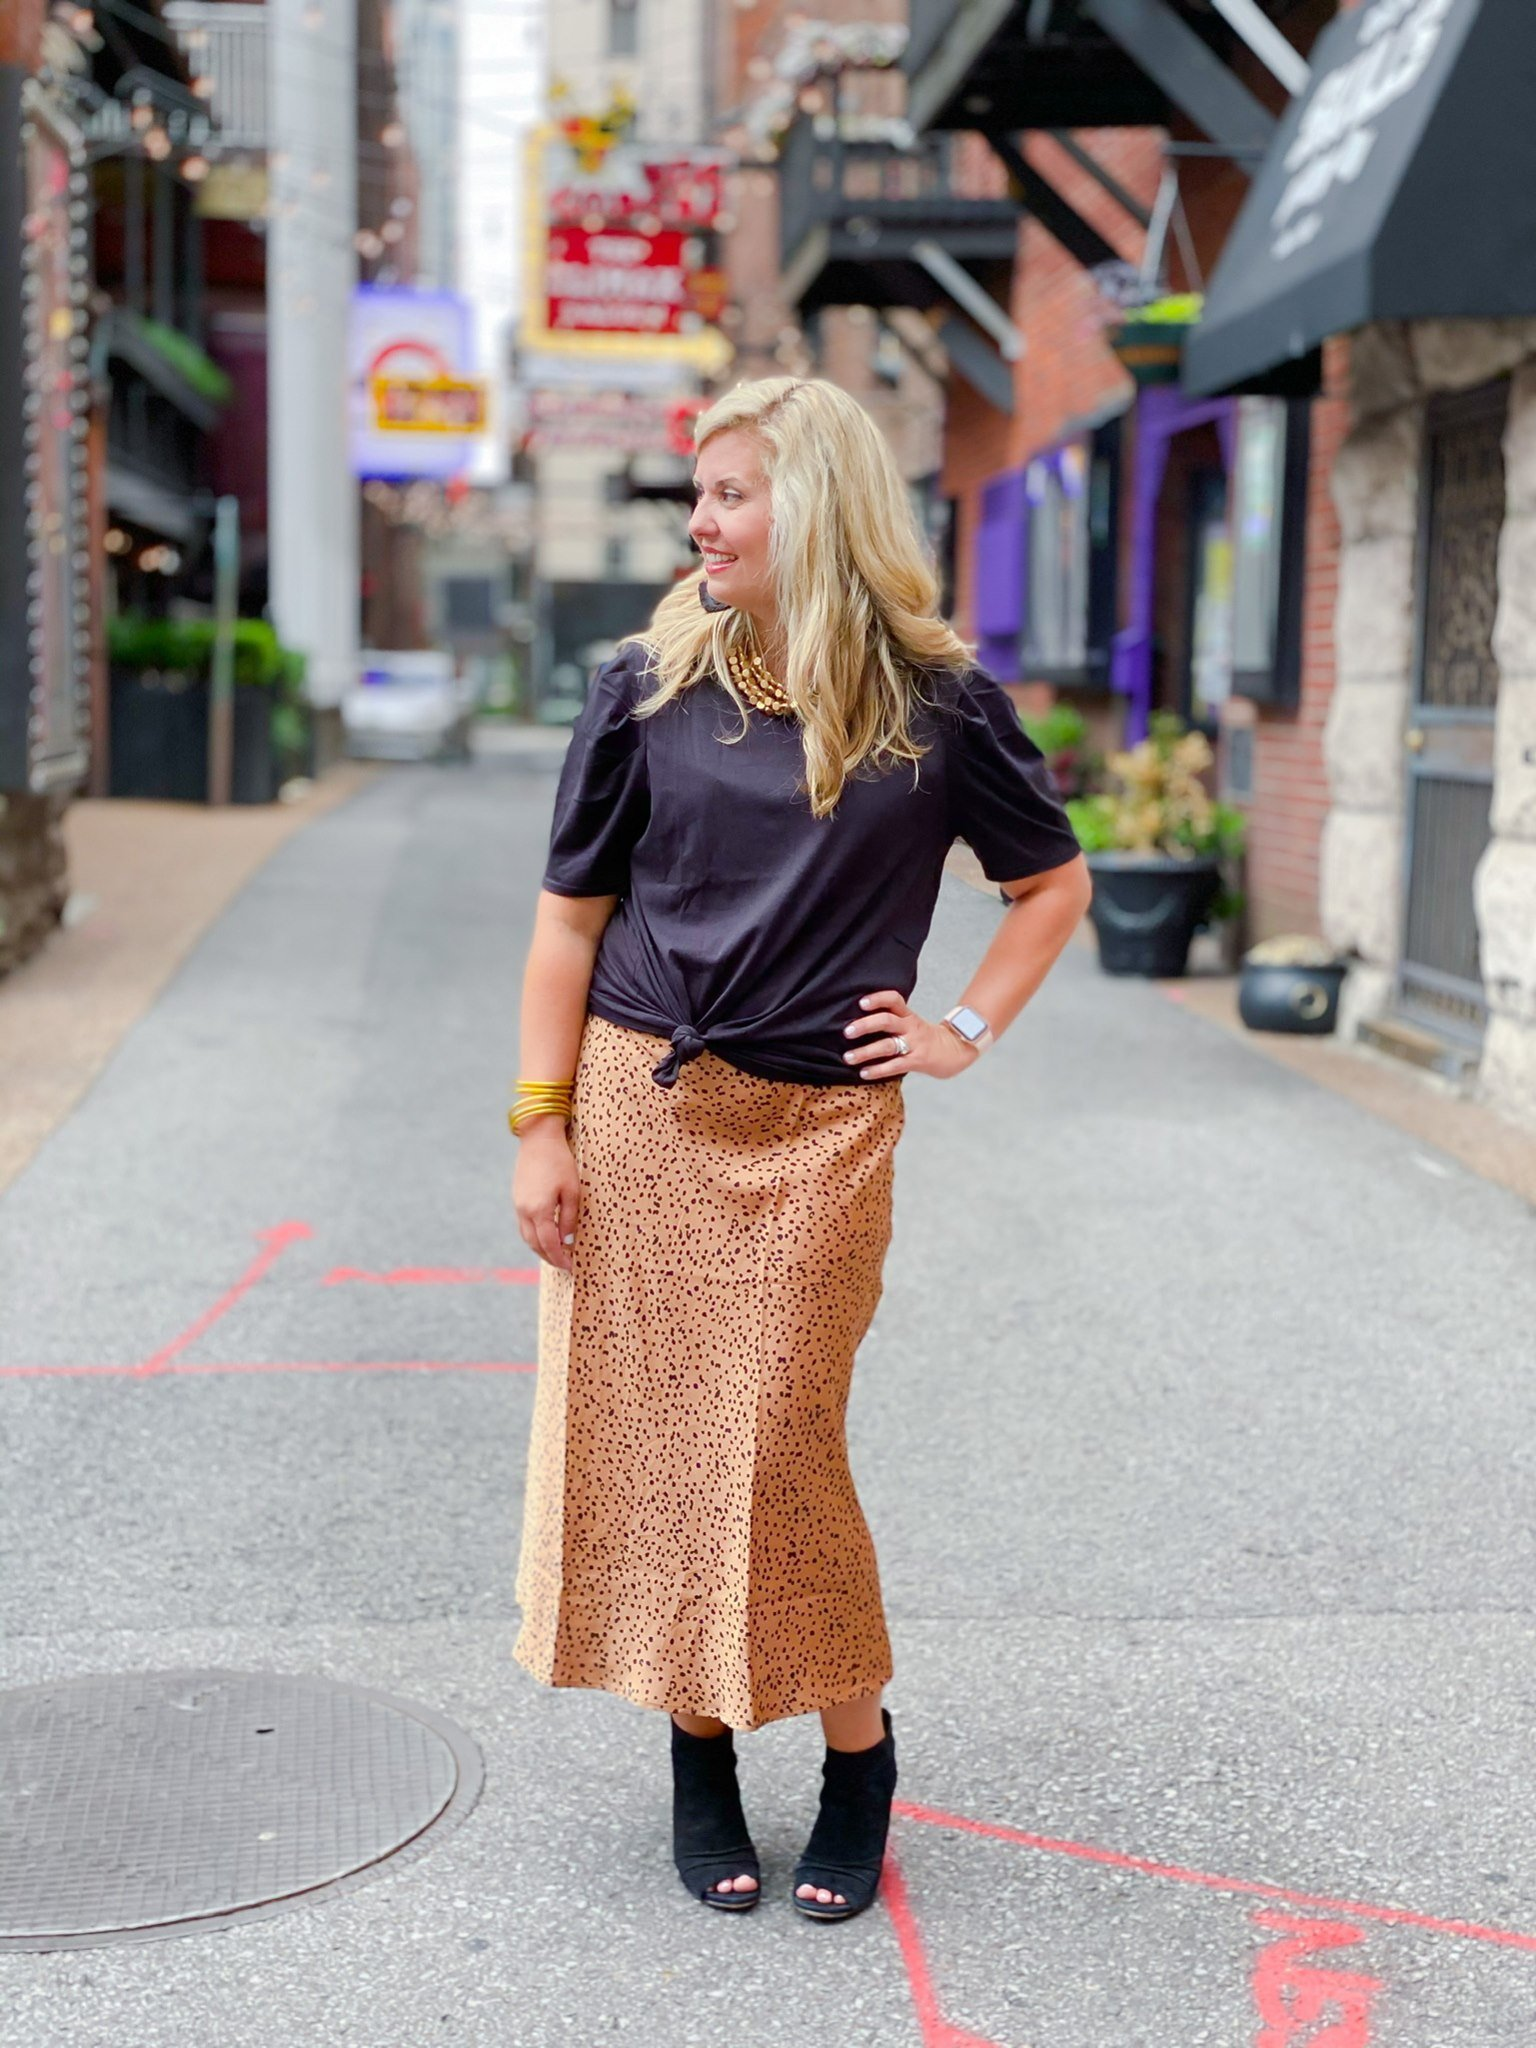 Urban Fitted Skirt by Good Hart paired with Black Briley Tee